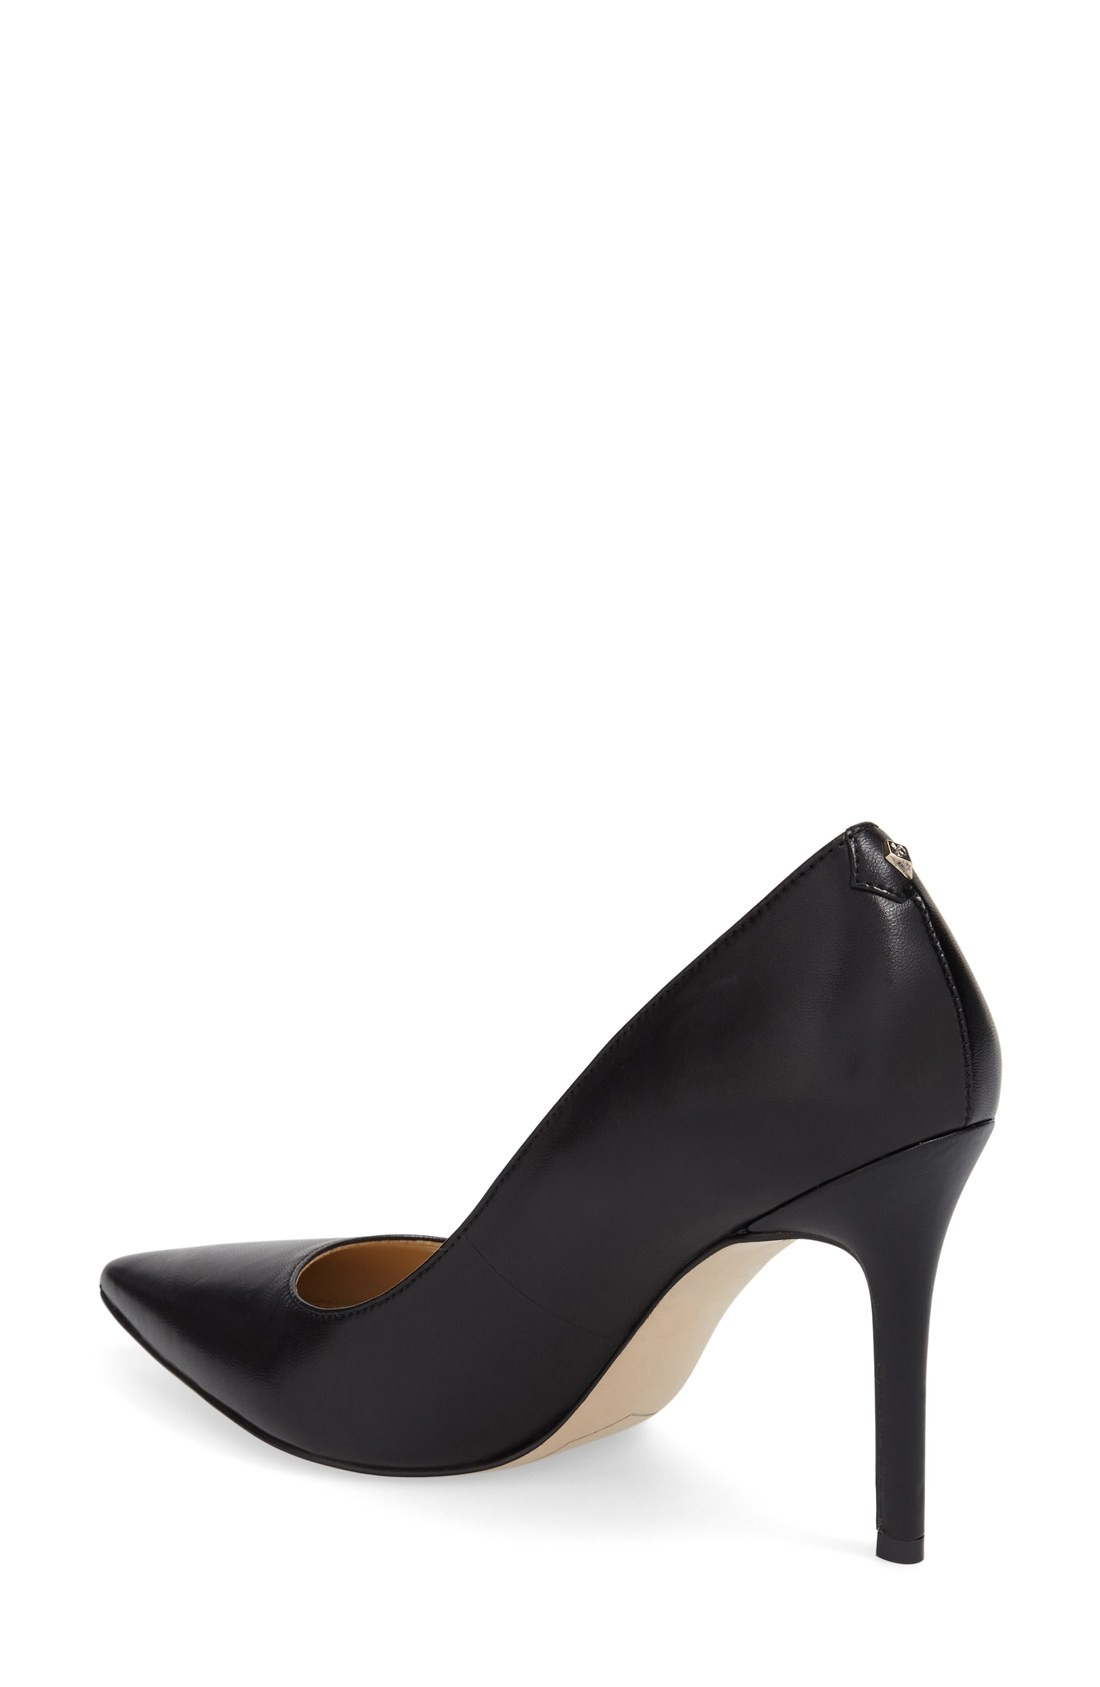 High Heels Black GpuQ7alC